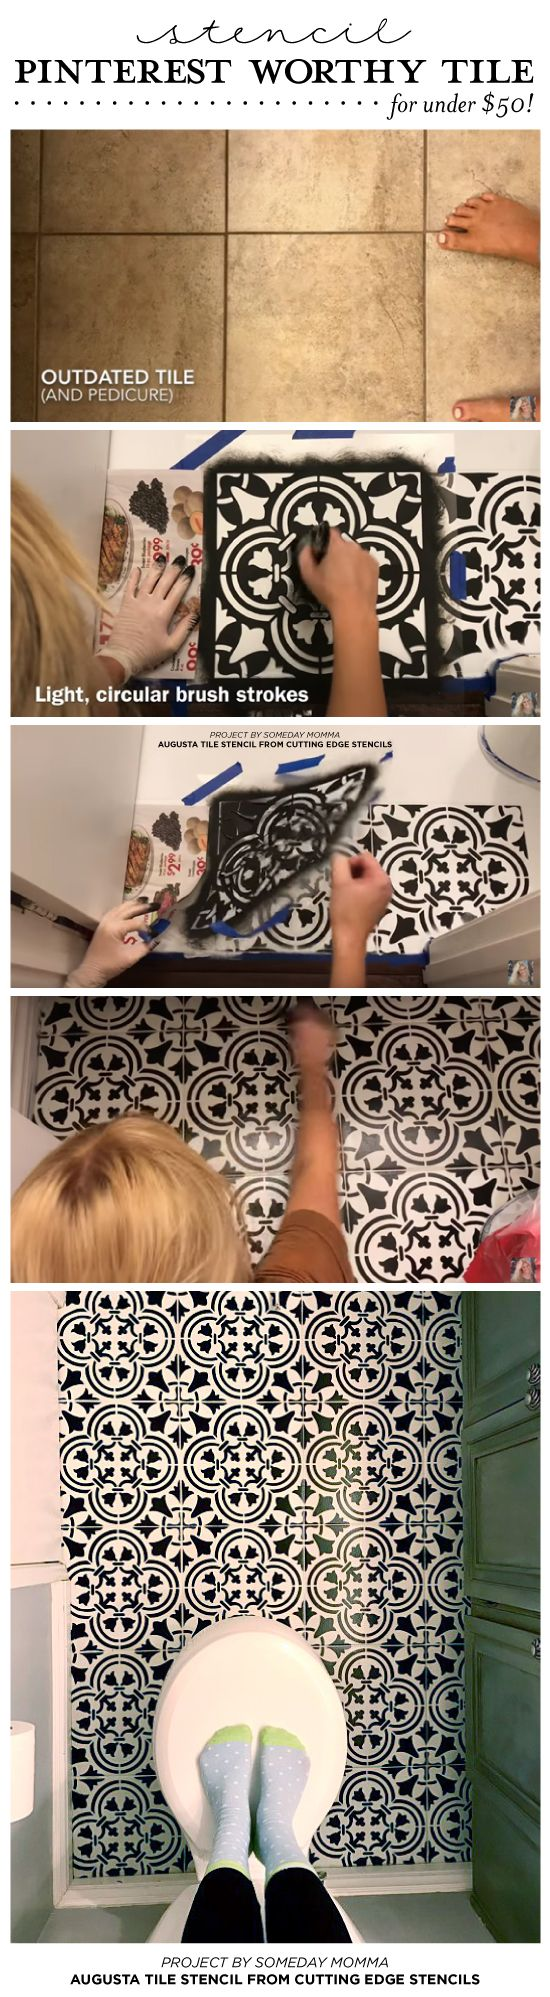 Cutting Edge Stencils shares a DIY painted and stenciled ceramic tile floor using the Augusta Tile pattern. http://www.cuttingedgestencils.com/augusta-tile-stencil-design-patchwork-tiles-stencils.html